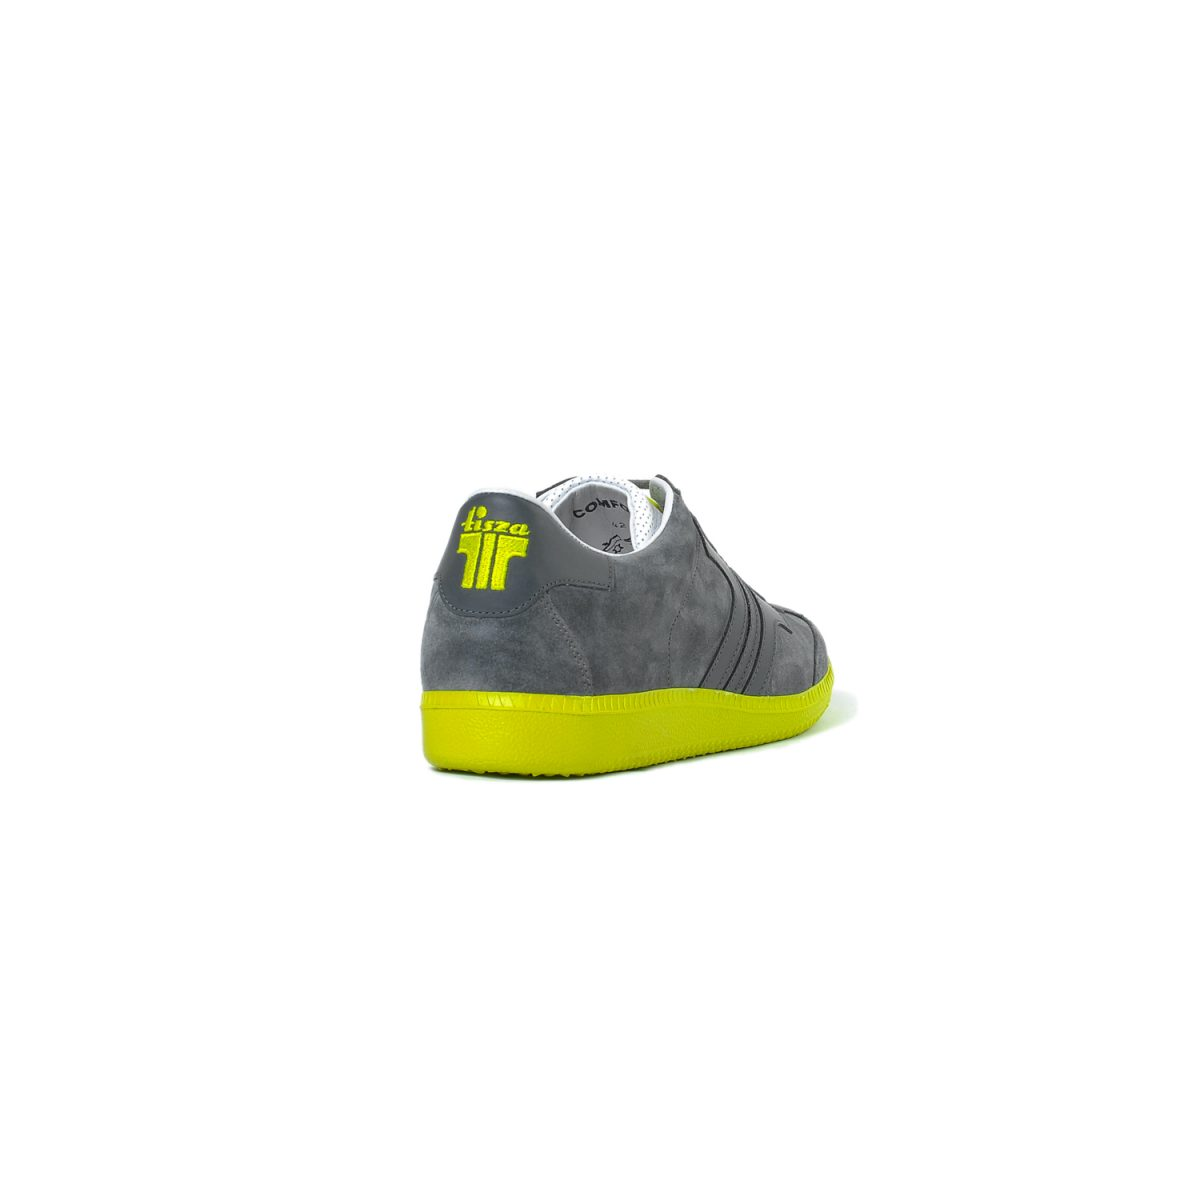 Tisza shoes - Comfort - Grey-lime